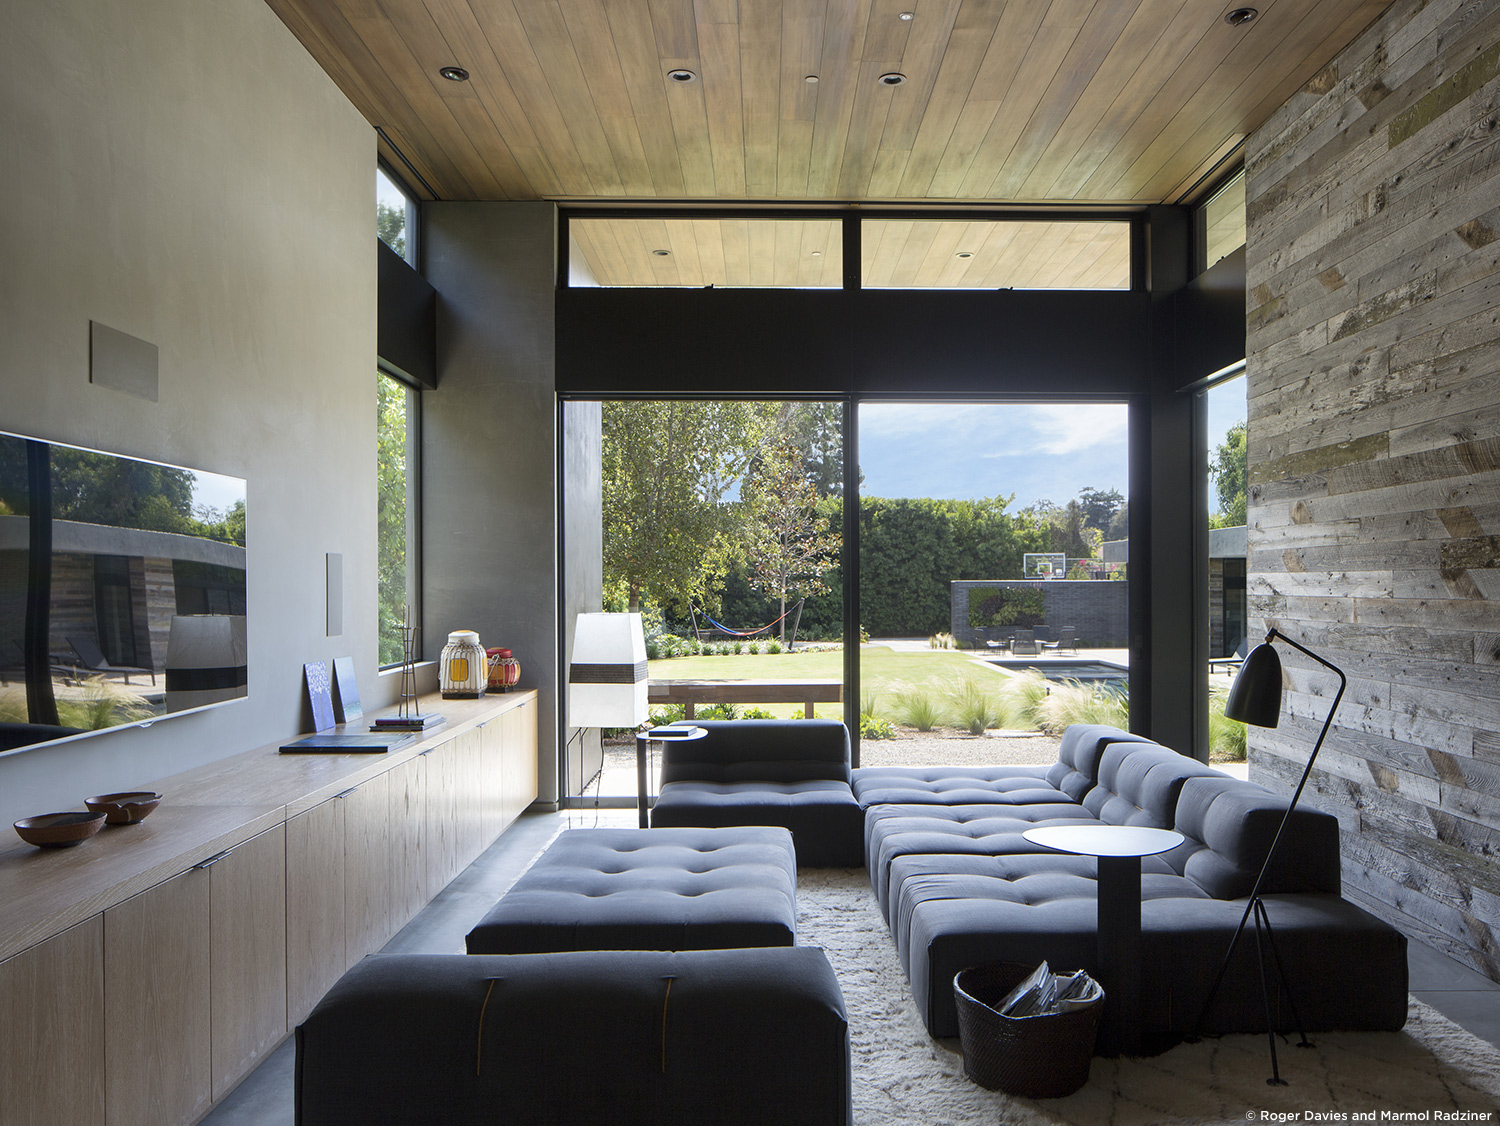 ... Living Room Design By Marmol Radziner 10 Beautiful Living Room Design  By Marmol Radziner 10 Beautiful